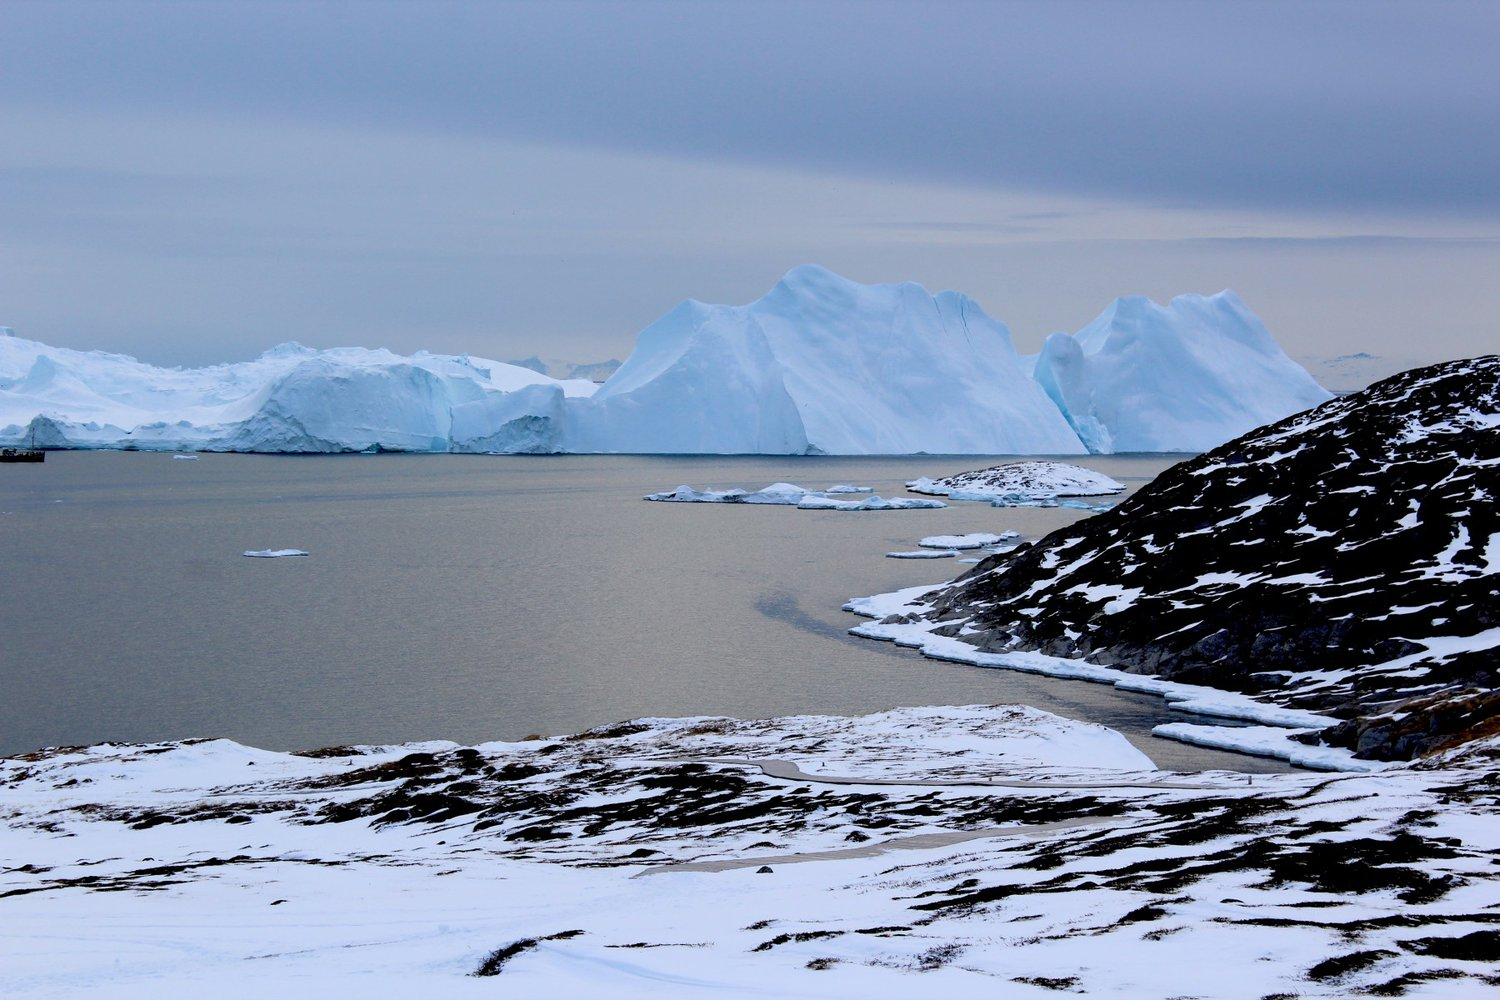 Greenlands glaciers will continue to disappear even if global warming stops